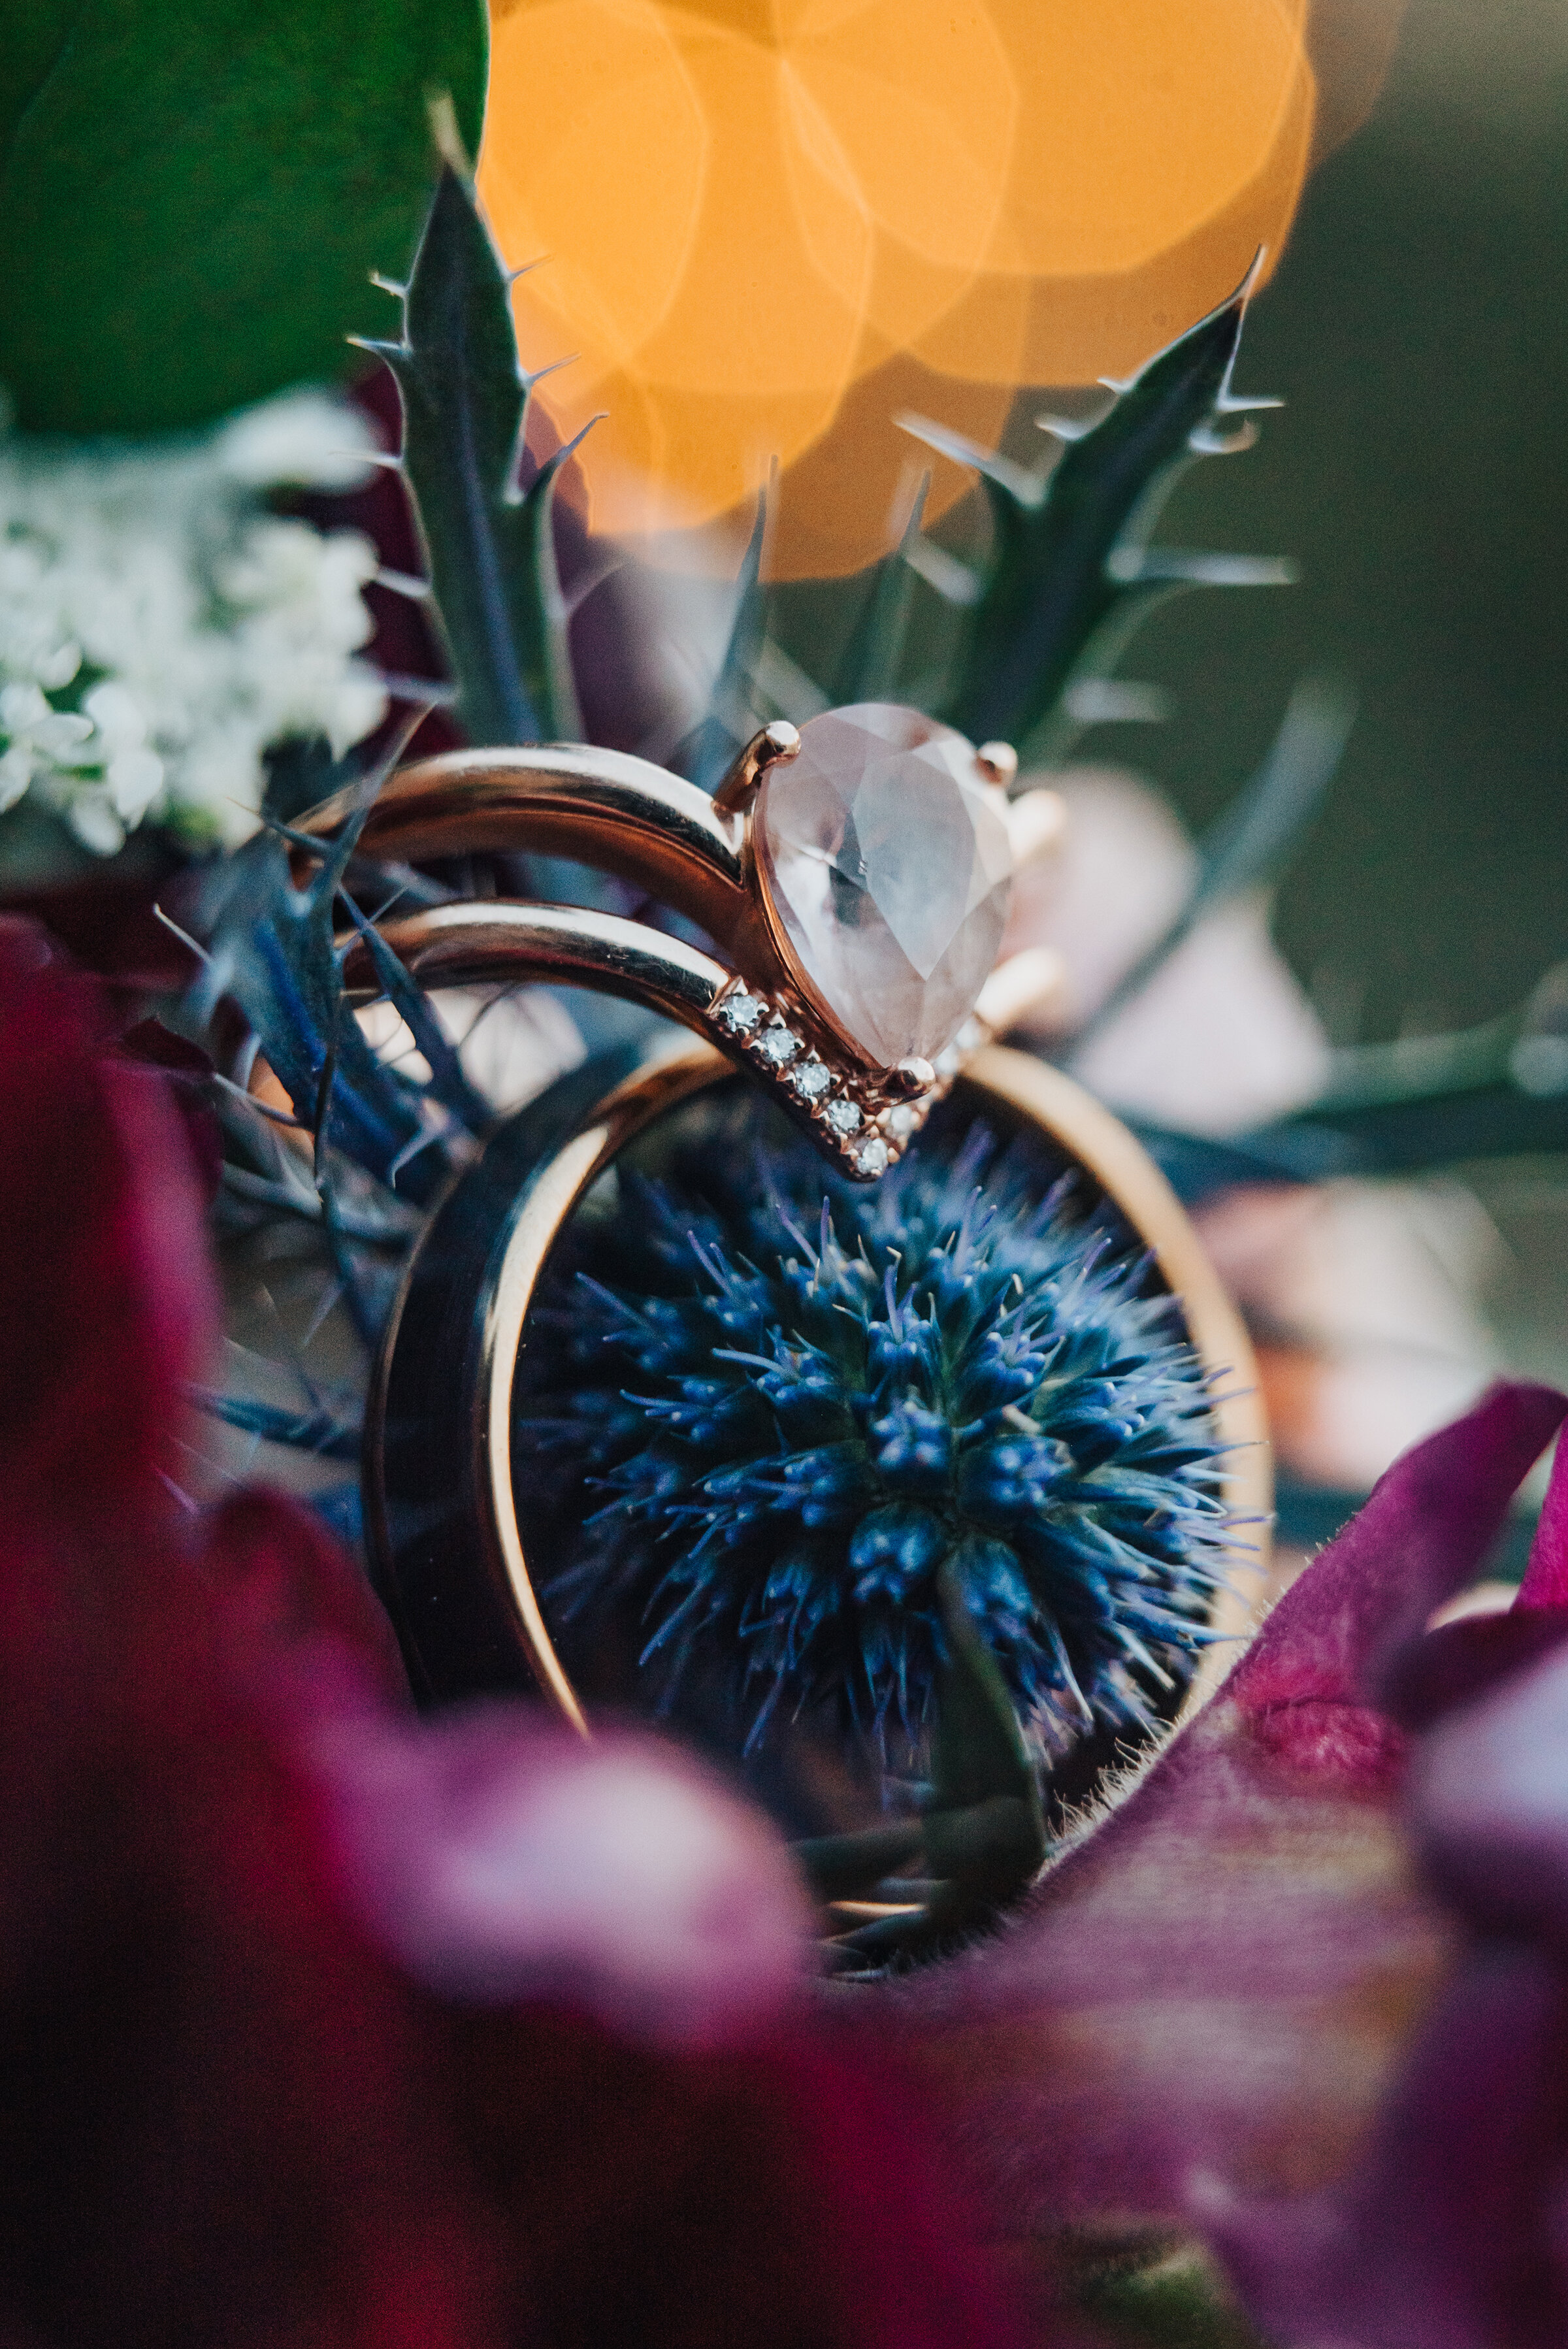 A close up shot of the rings shot by Kristi Alyse photography in northern Utah. Wedding ring inspiration bride and groom rings floral bouquet wedding details photos logan Utah oval diamond gold band wedding flowers wedding day #weddinginspo #loganutah #brideandgroom #utahbride #utahweddingphotographer #meaningfulmoment#weddingphotography #northernutahwedding #weddinghairstyles #weddingday #bridals